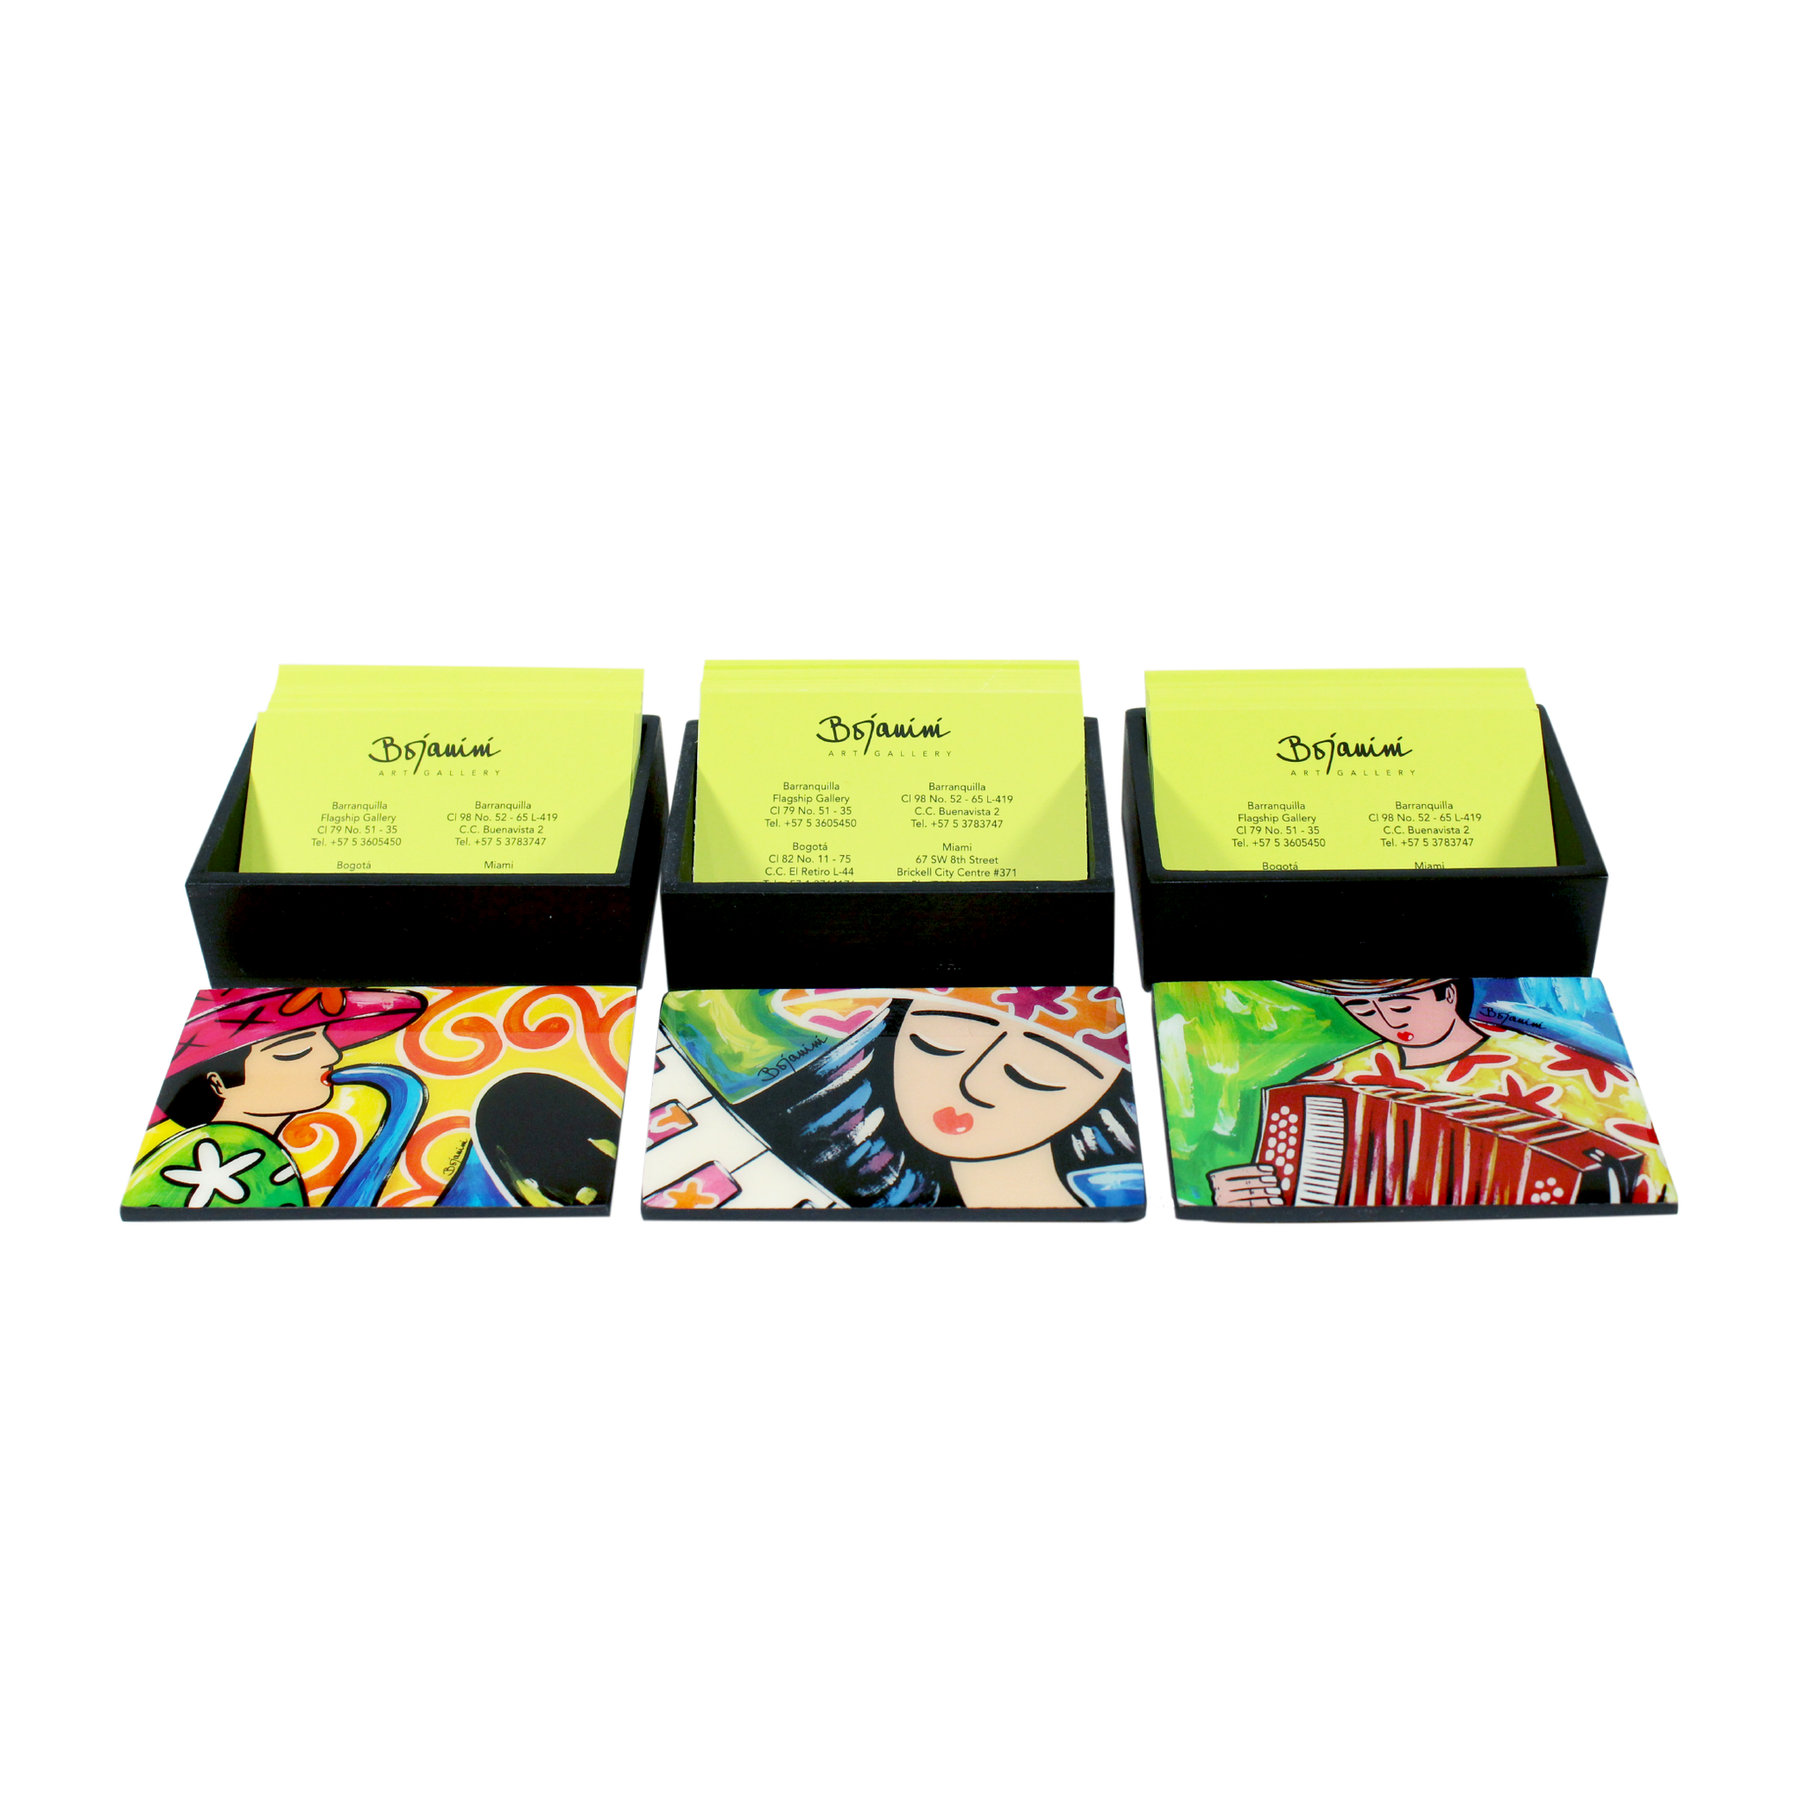 Glamorous business card holder office wood boxes bojanini store buy you business card box with artistic designs reheart Images